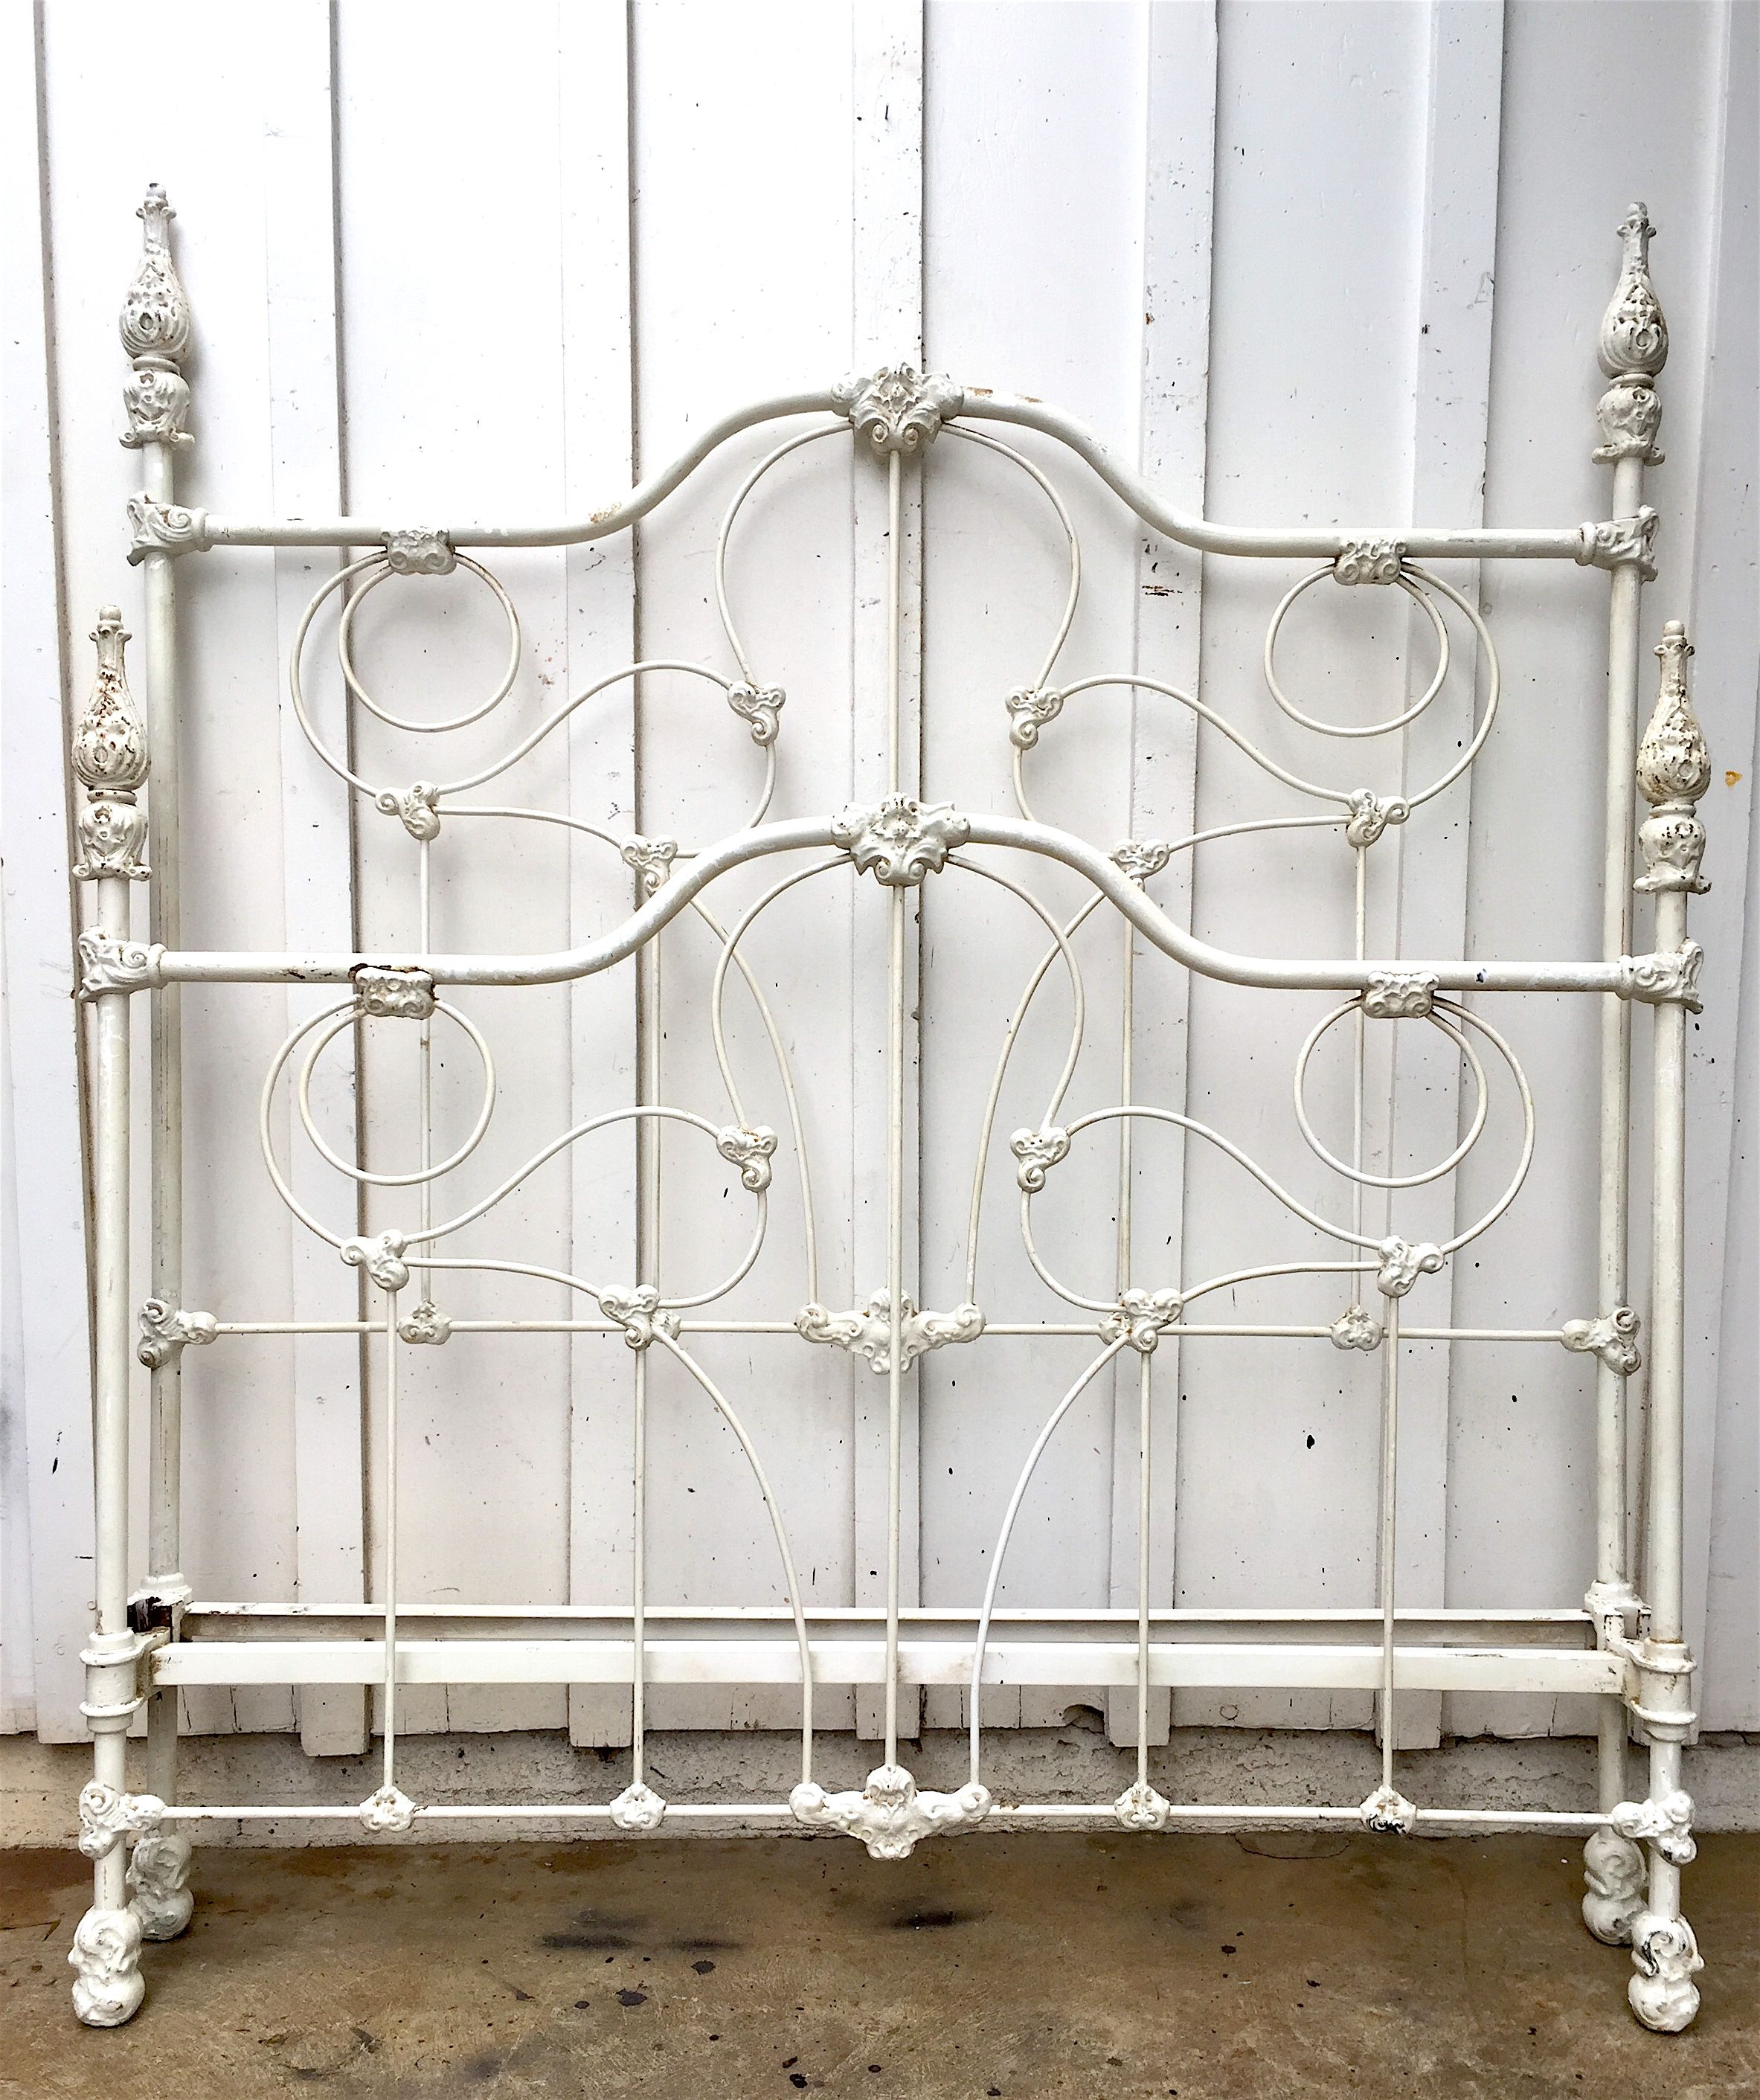 Original Four Poster Beds Like This One From The Mid 1800s Have